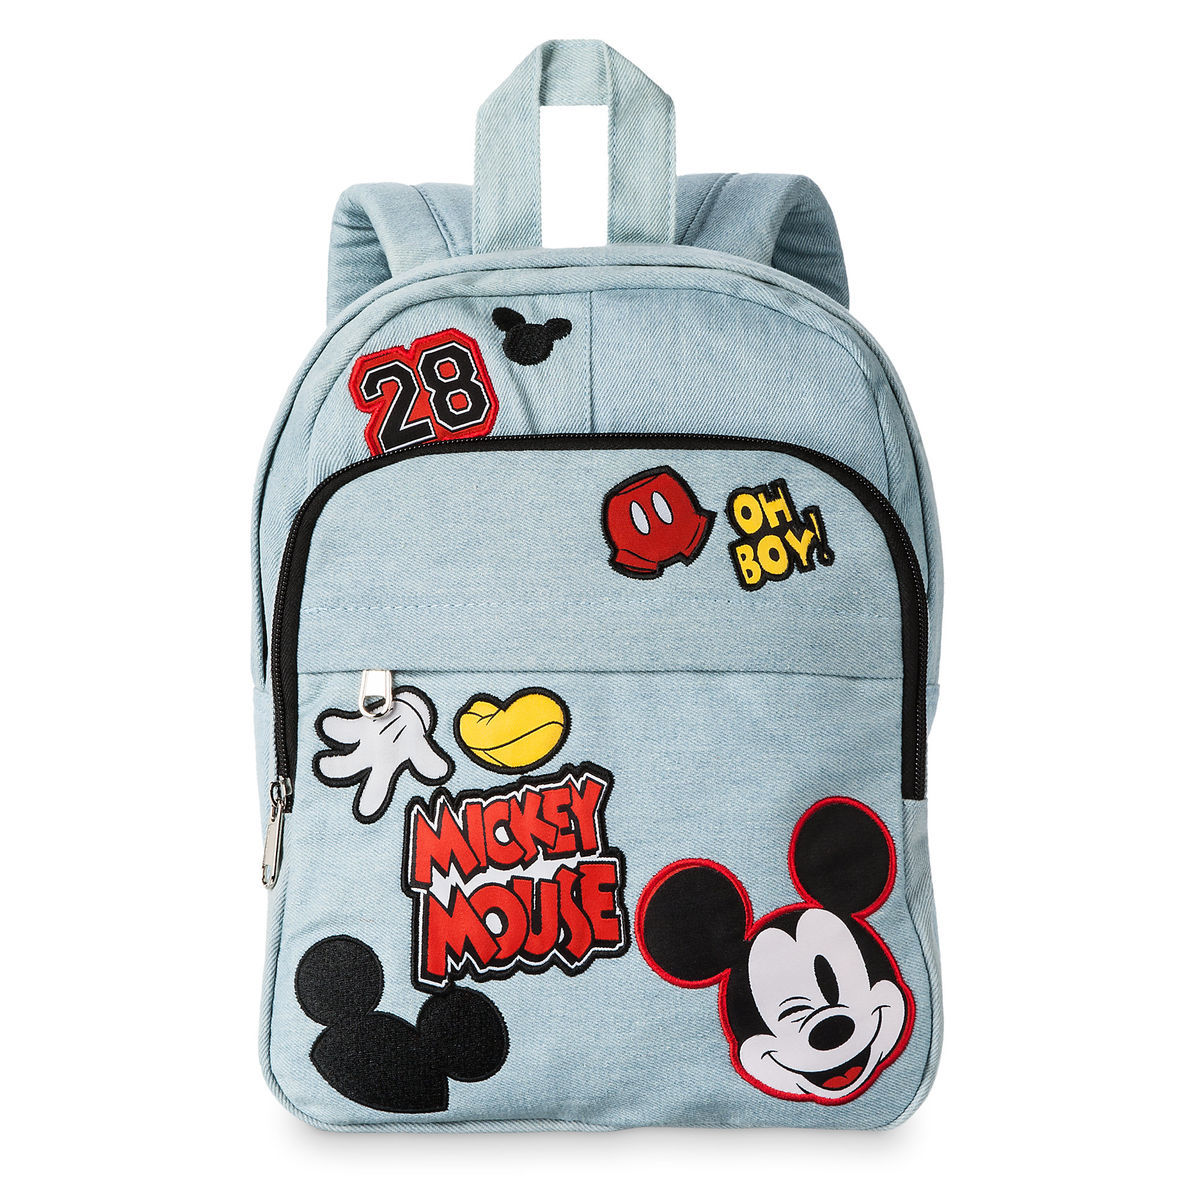 be9ae18b8099 Product Image of Mickey Mouse Embroidered Mini Backpack   1